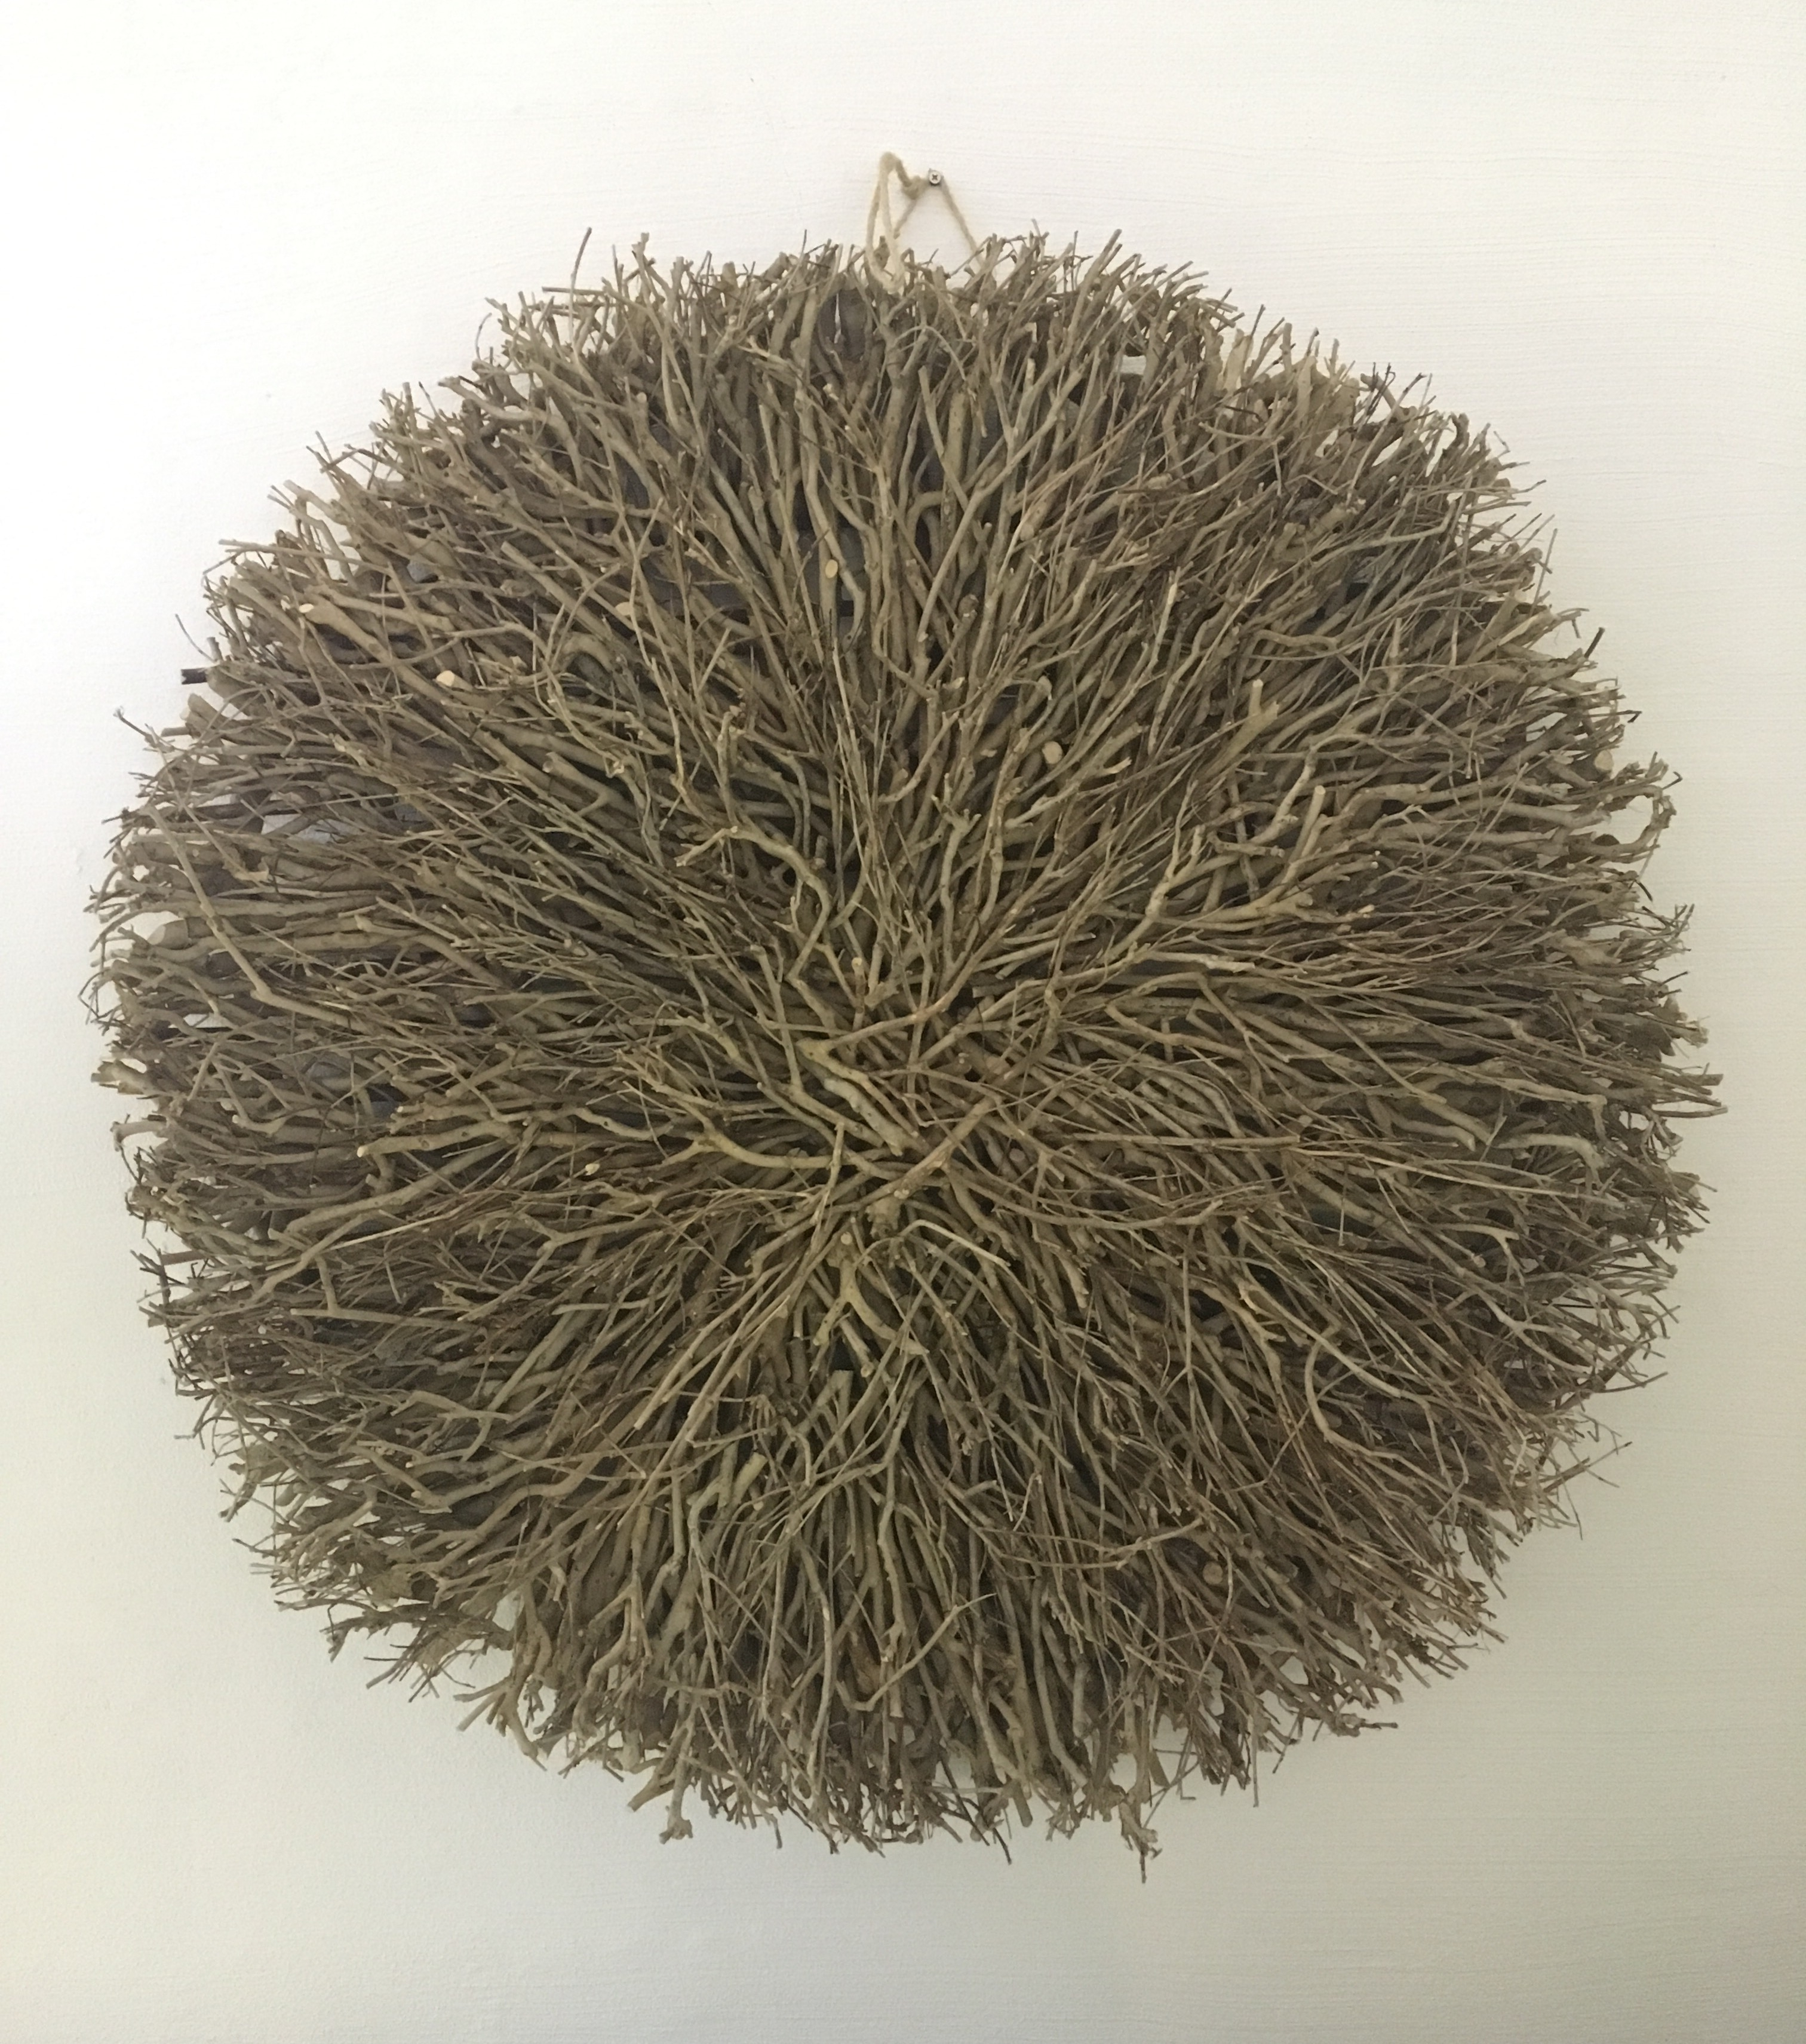 Wall Decor – Twig Large Round Natural – Daydream Leisure Furniture Intended For Round Wall Art (View 8 of 20)